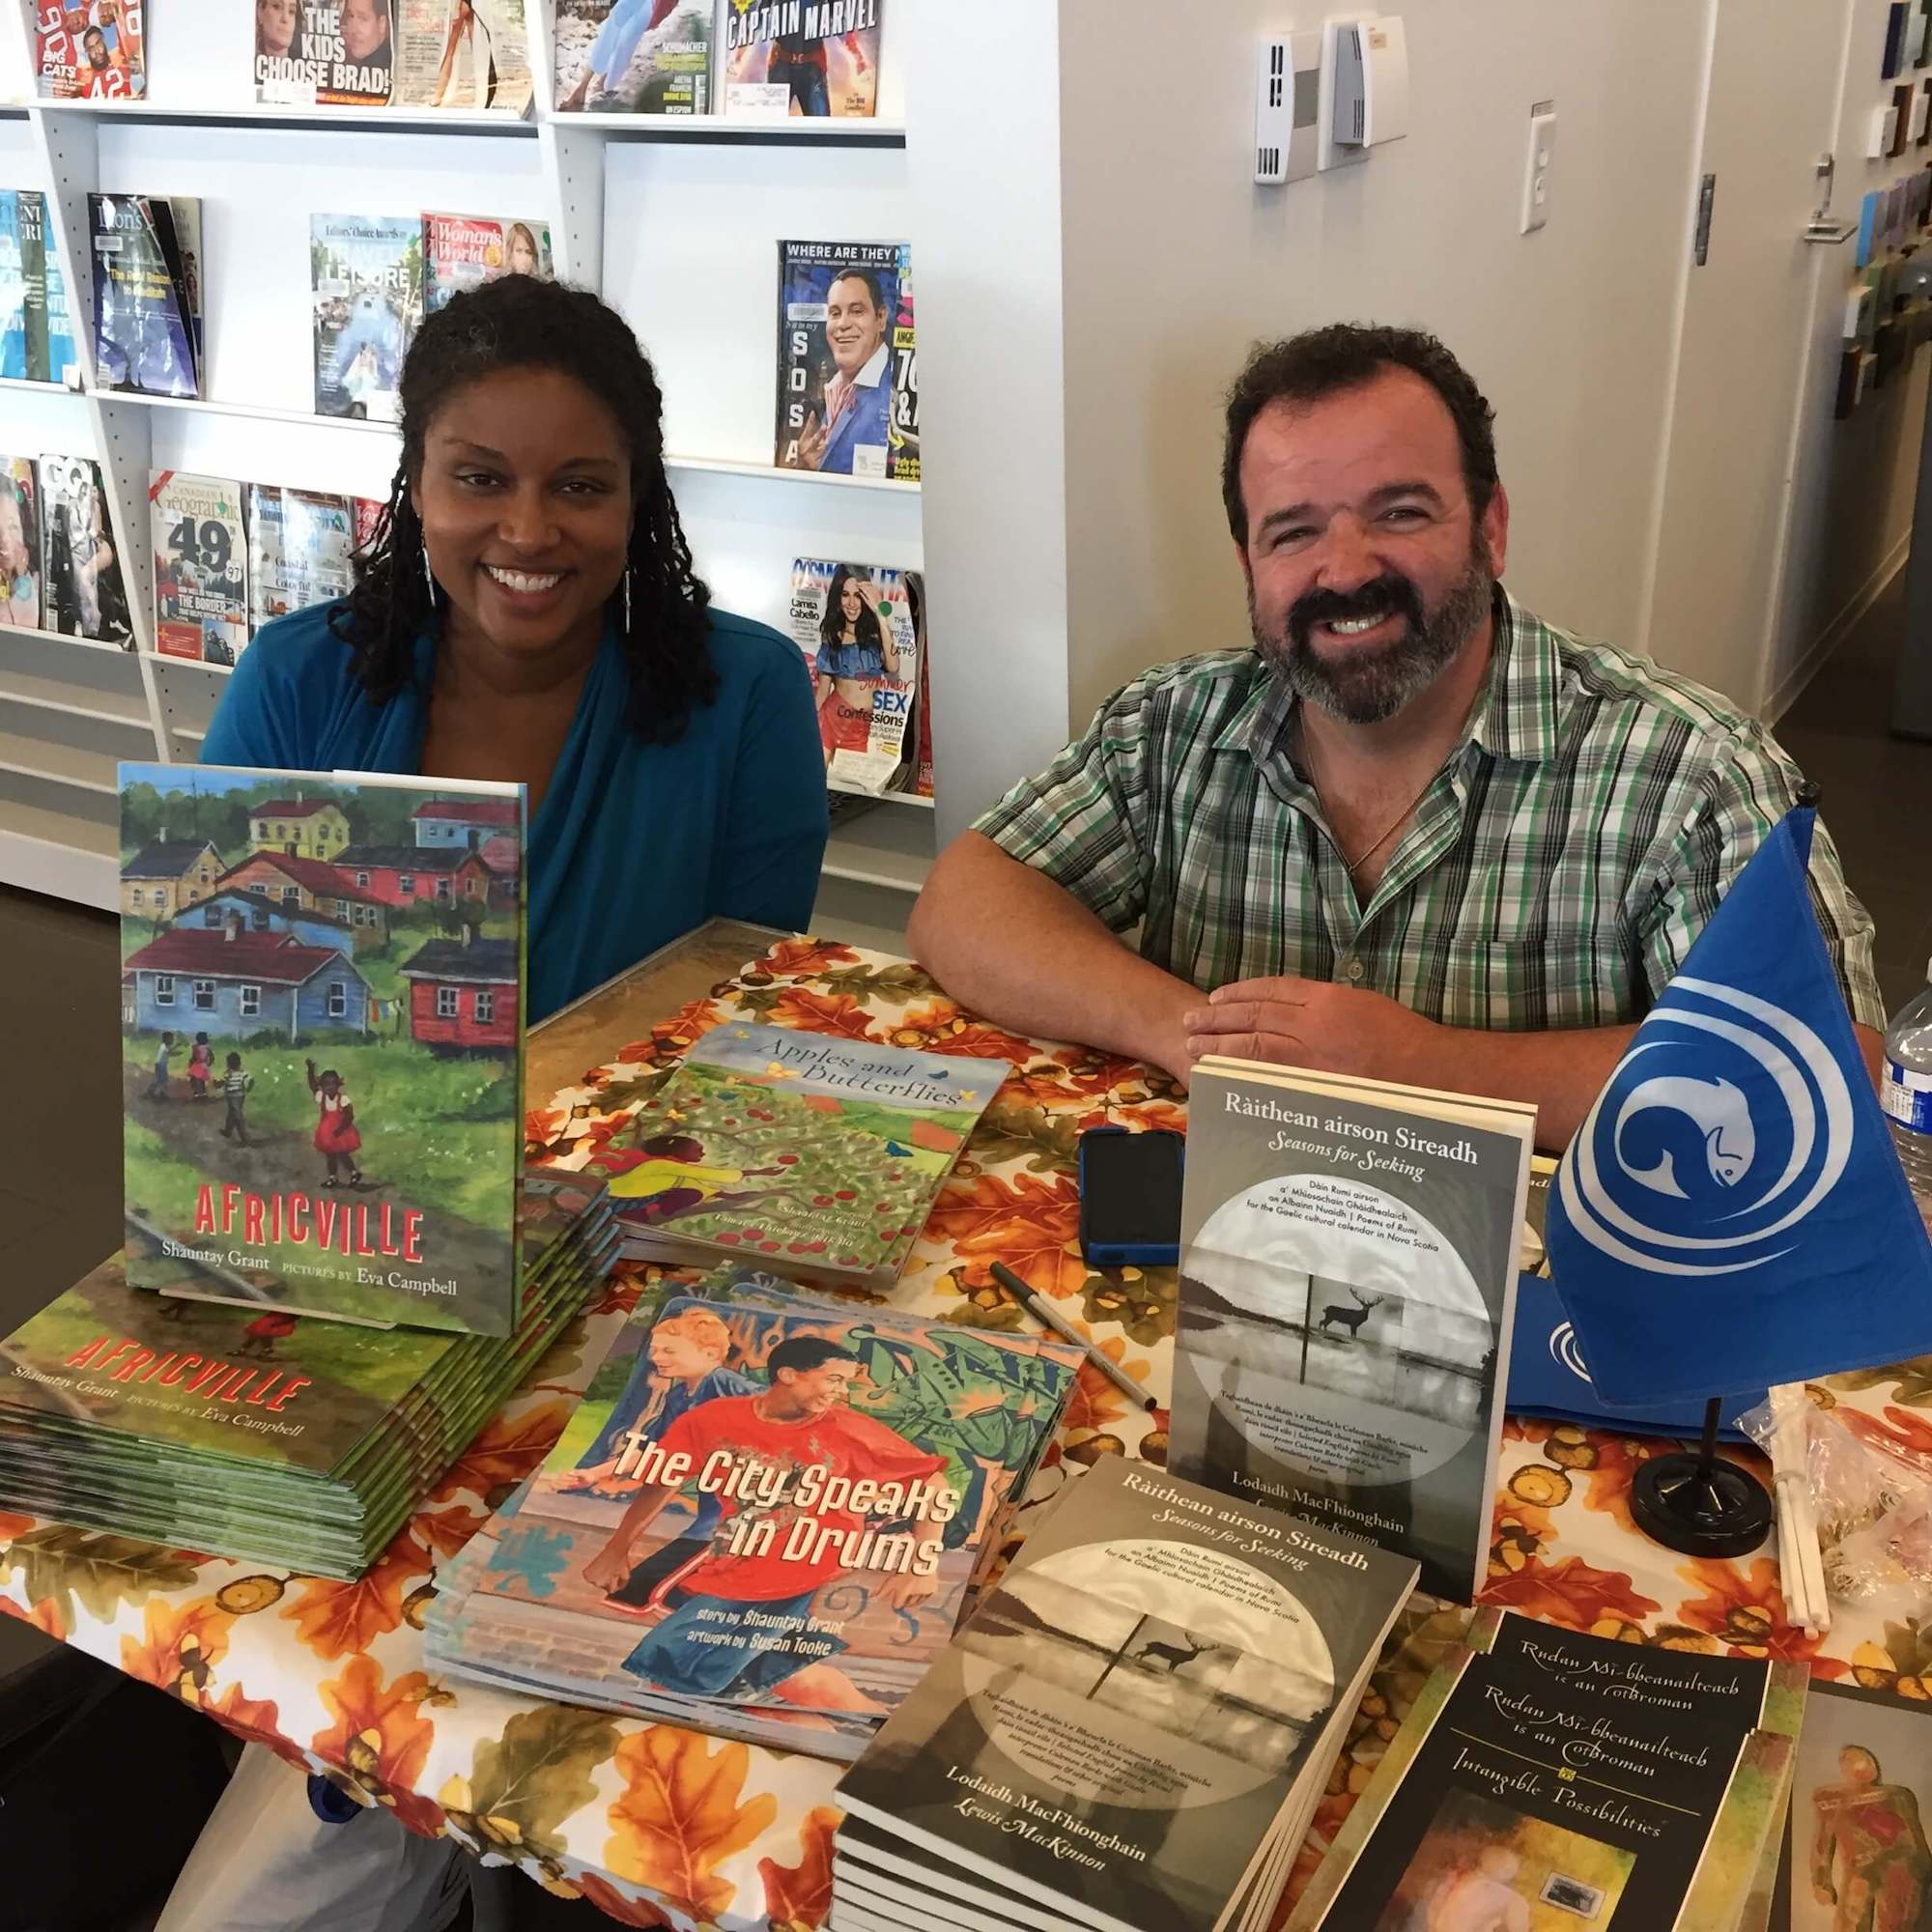 House of Anansi author Shauntay Grant and Bradan Press author Lewis MacKinnon (Lodaidh MacFhionghain) signing books at Word on the Street Halifax 2018